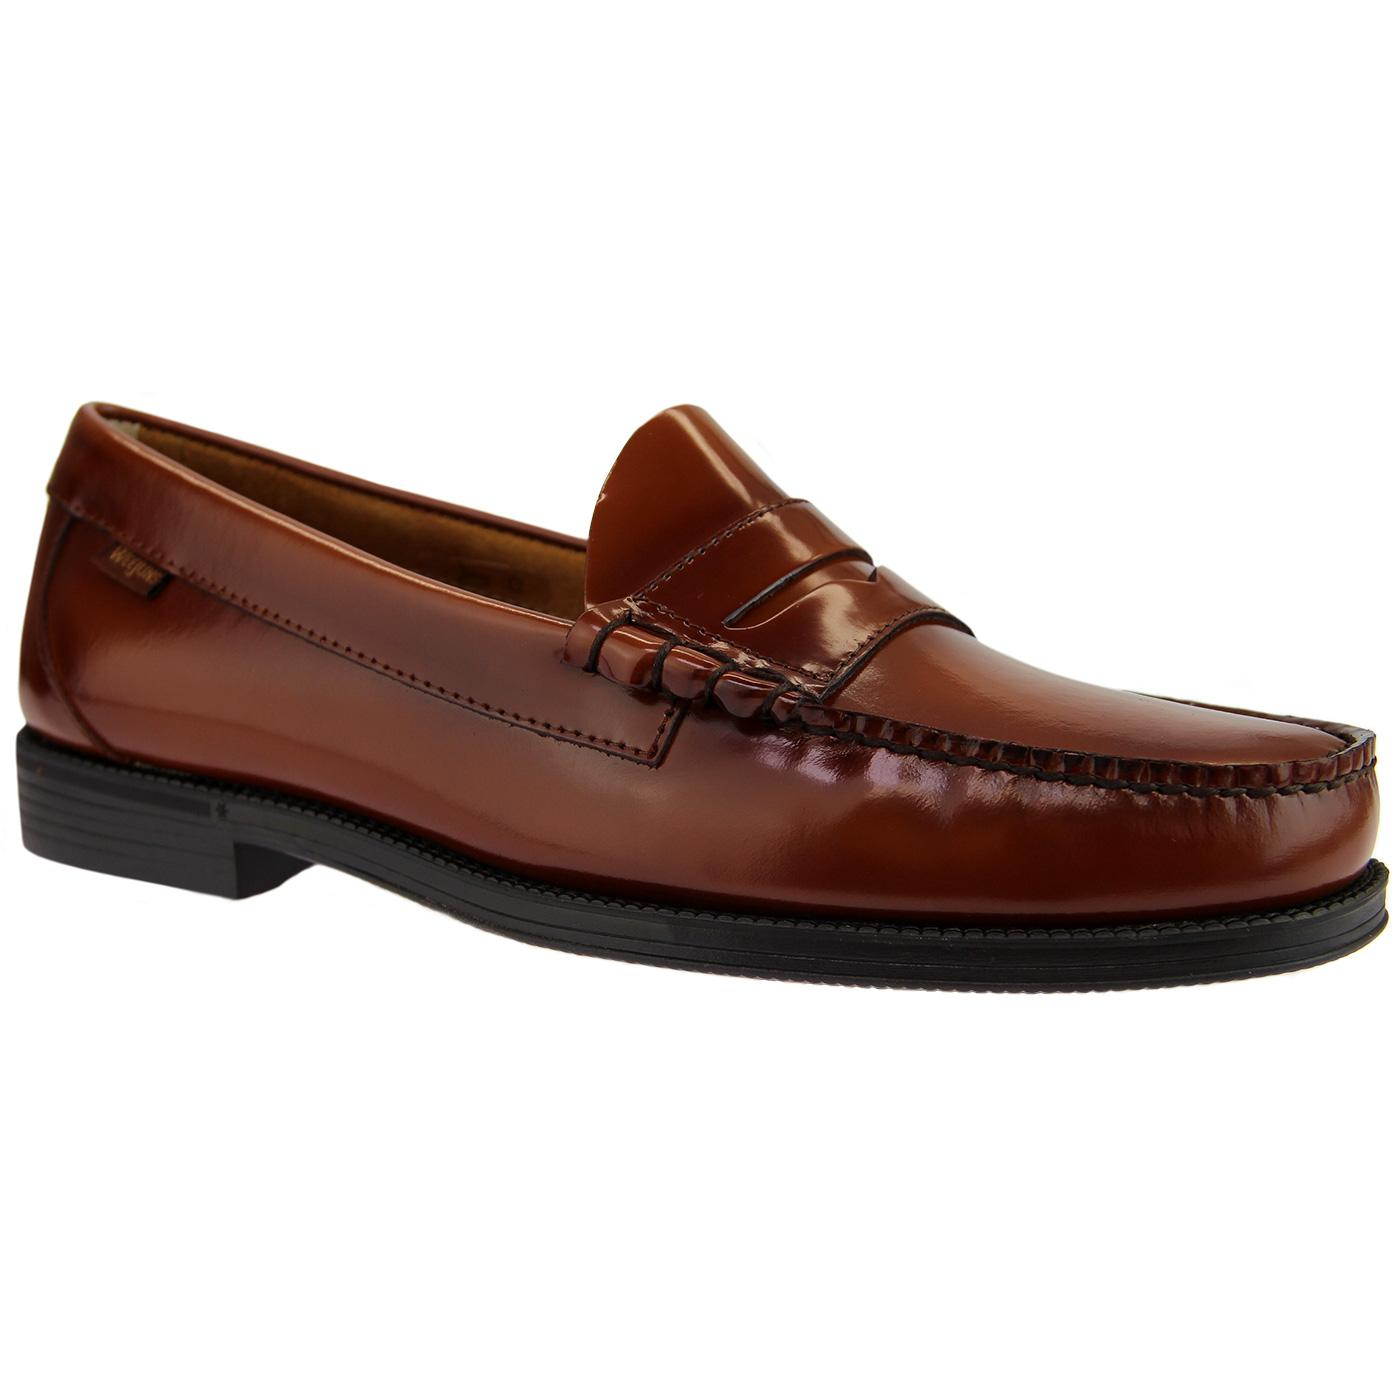 Larson Easy BASS WEEJUNS Mod 60's Penny Loafers MB